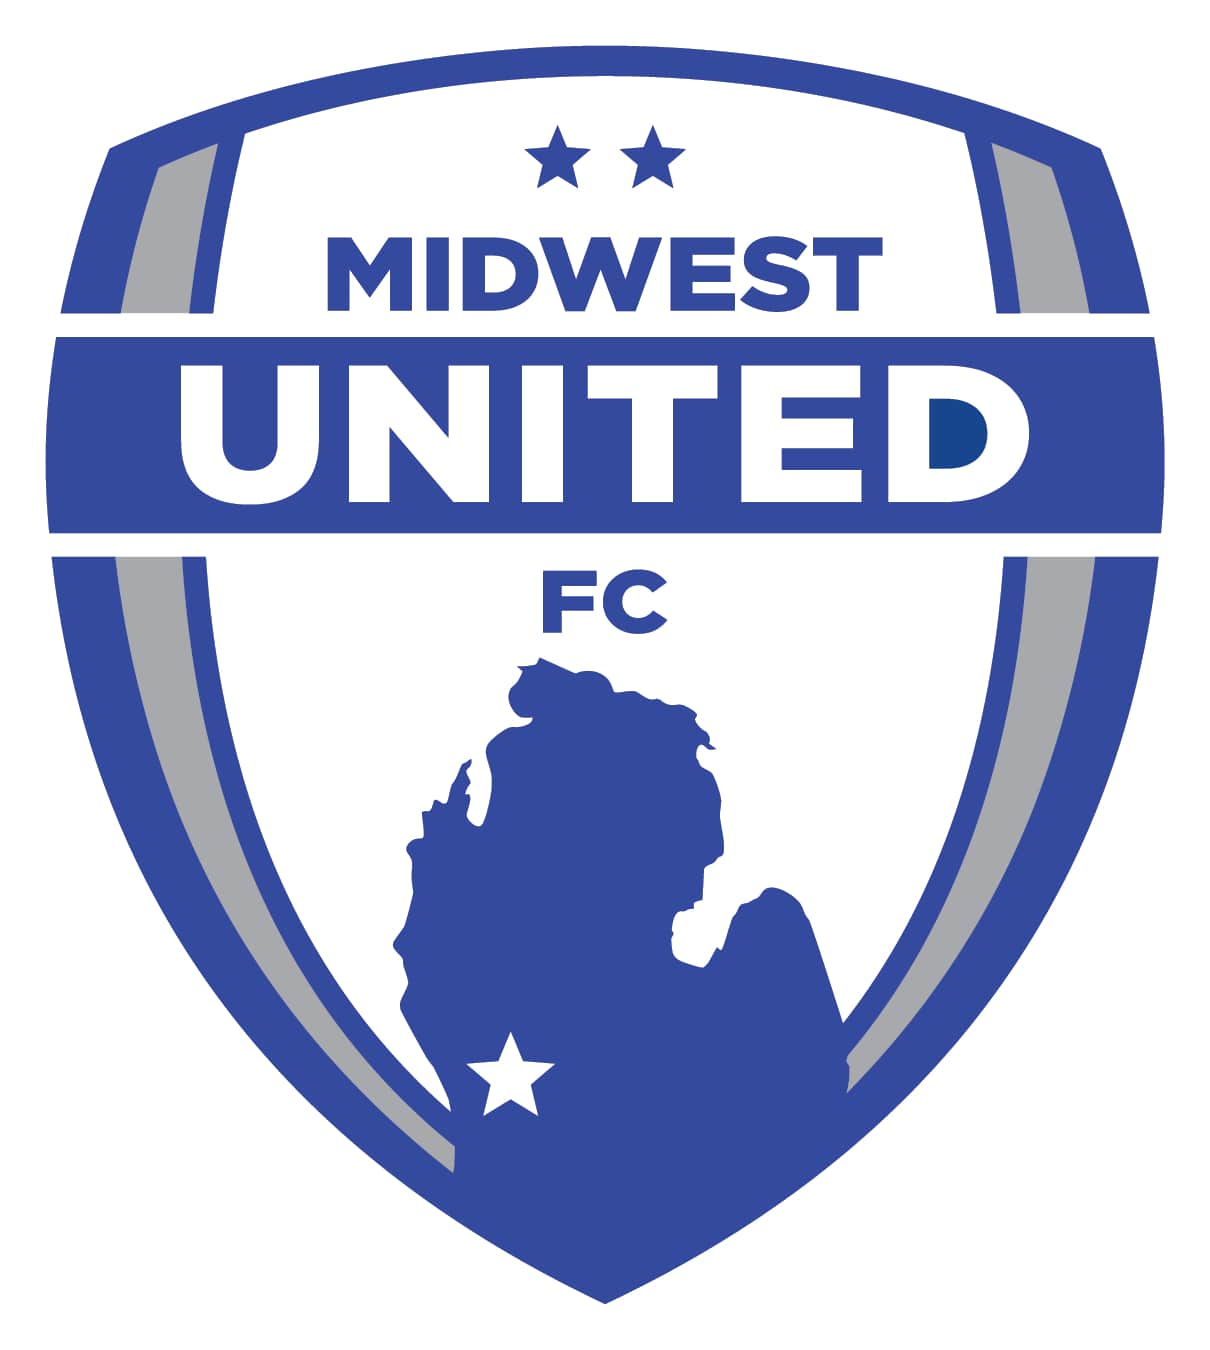 Midwest United FC 05 Royal